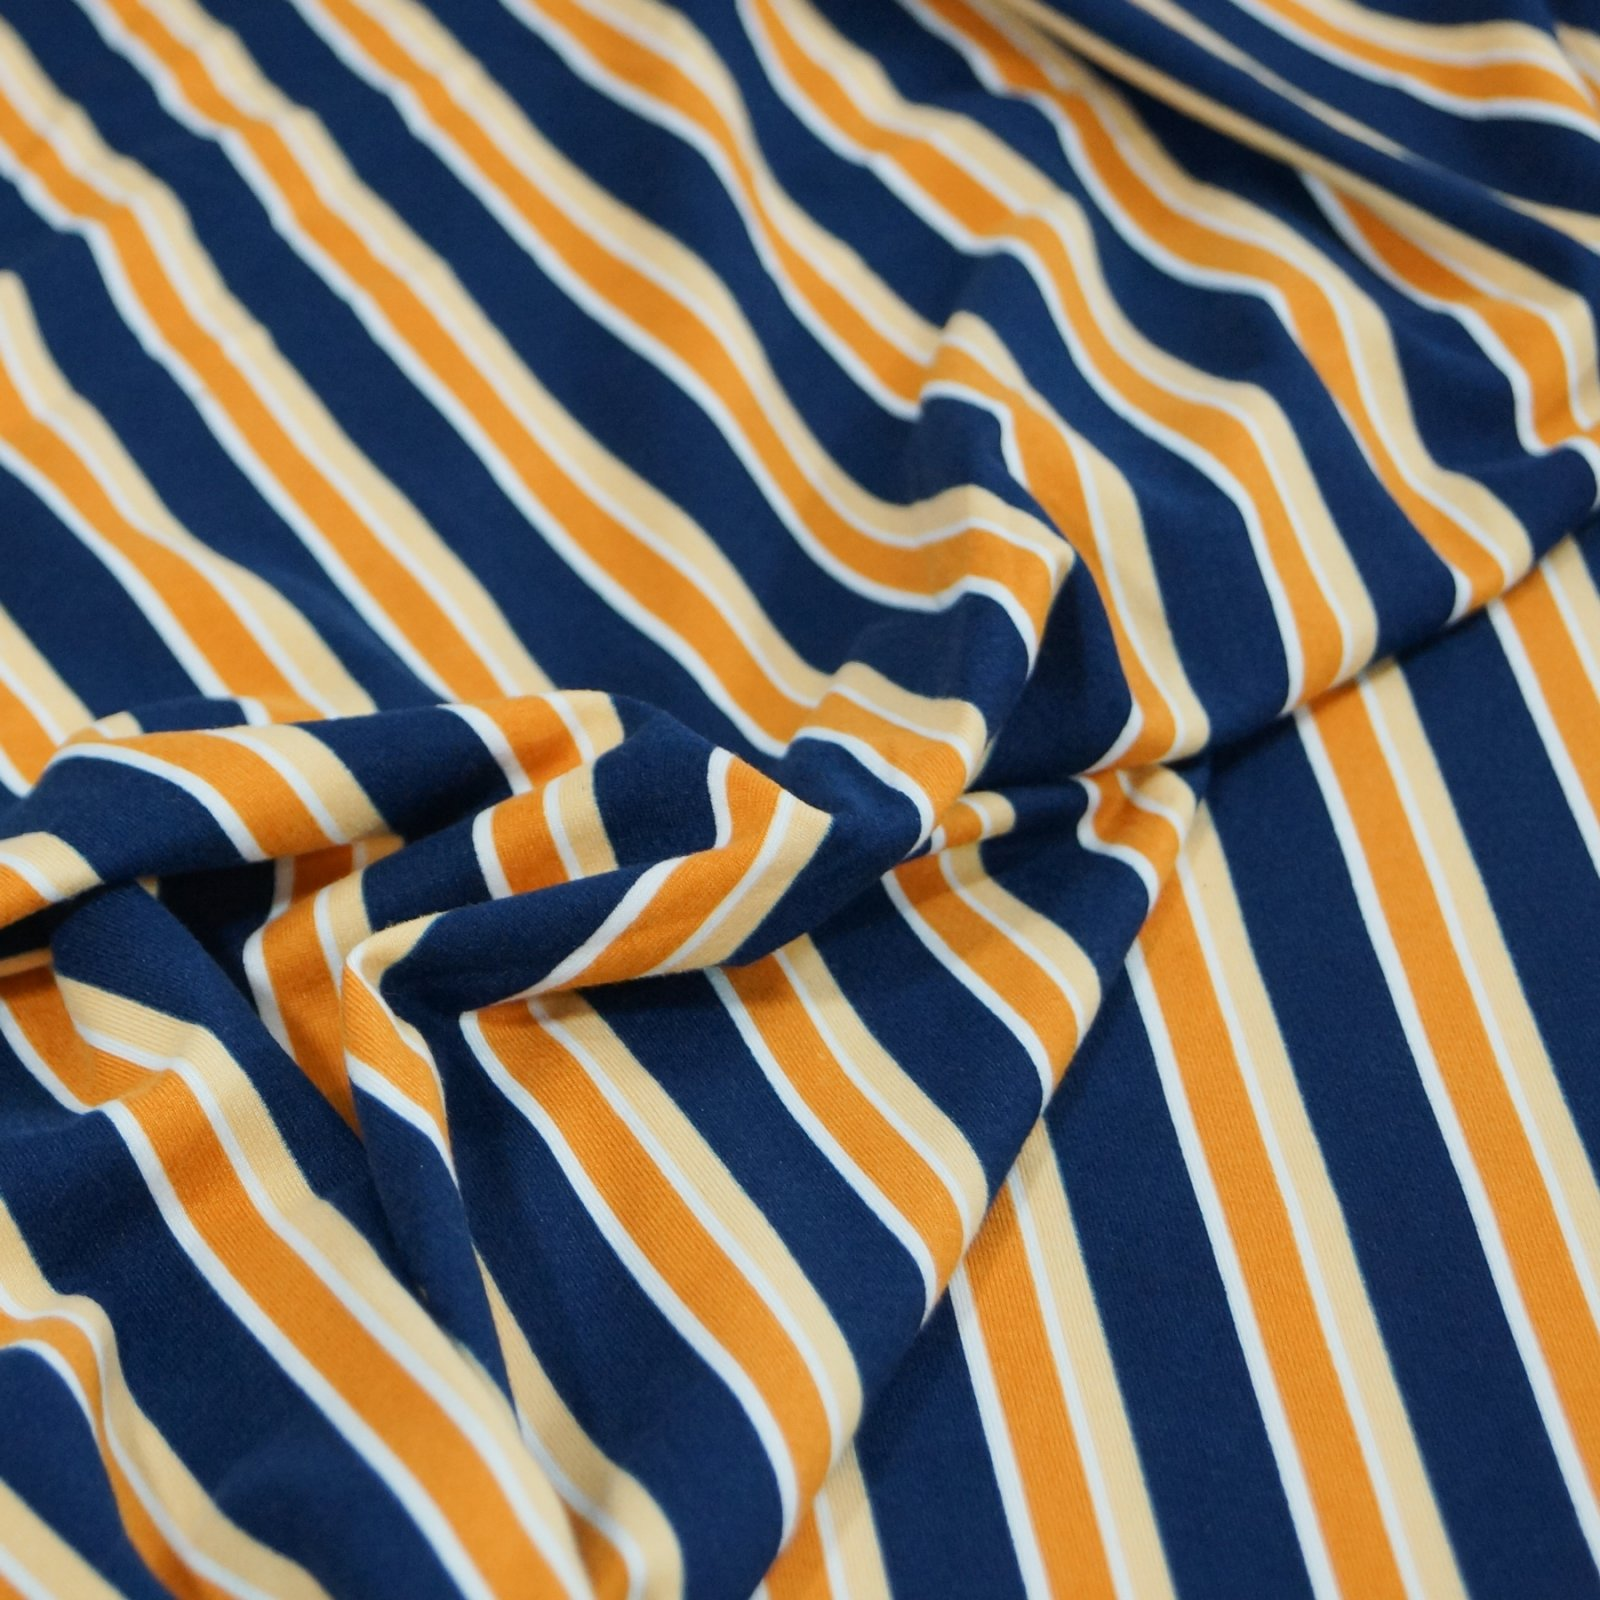 Knit - Stripes: Blue, Orange, & Gold stripes